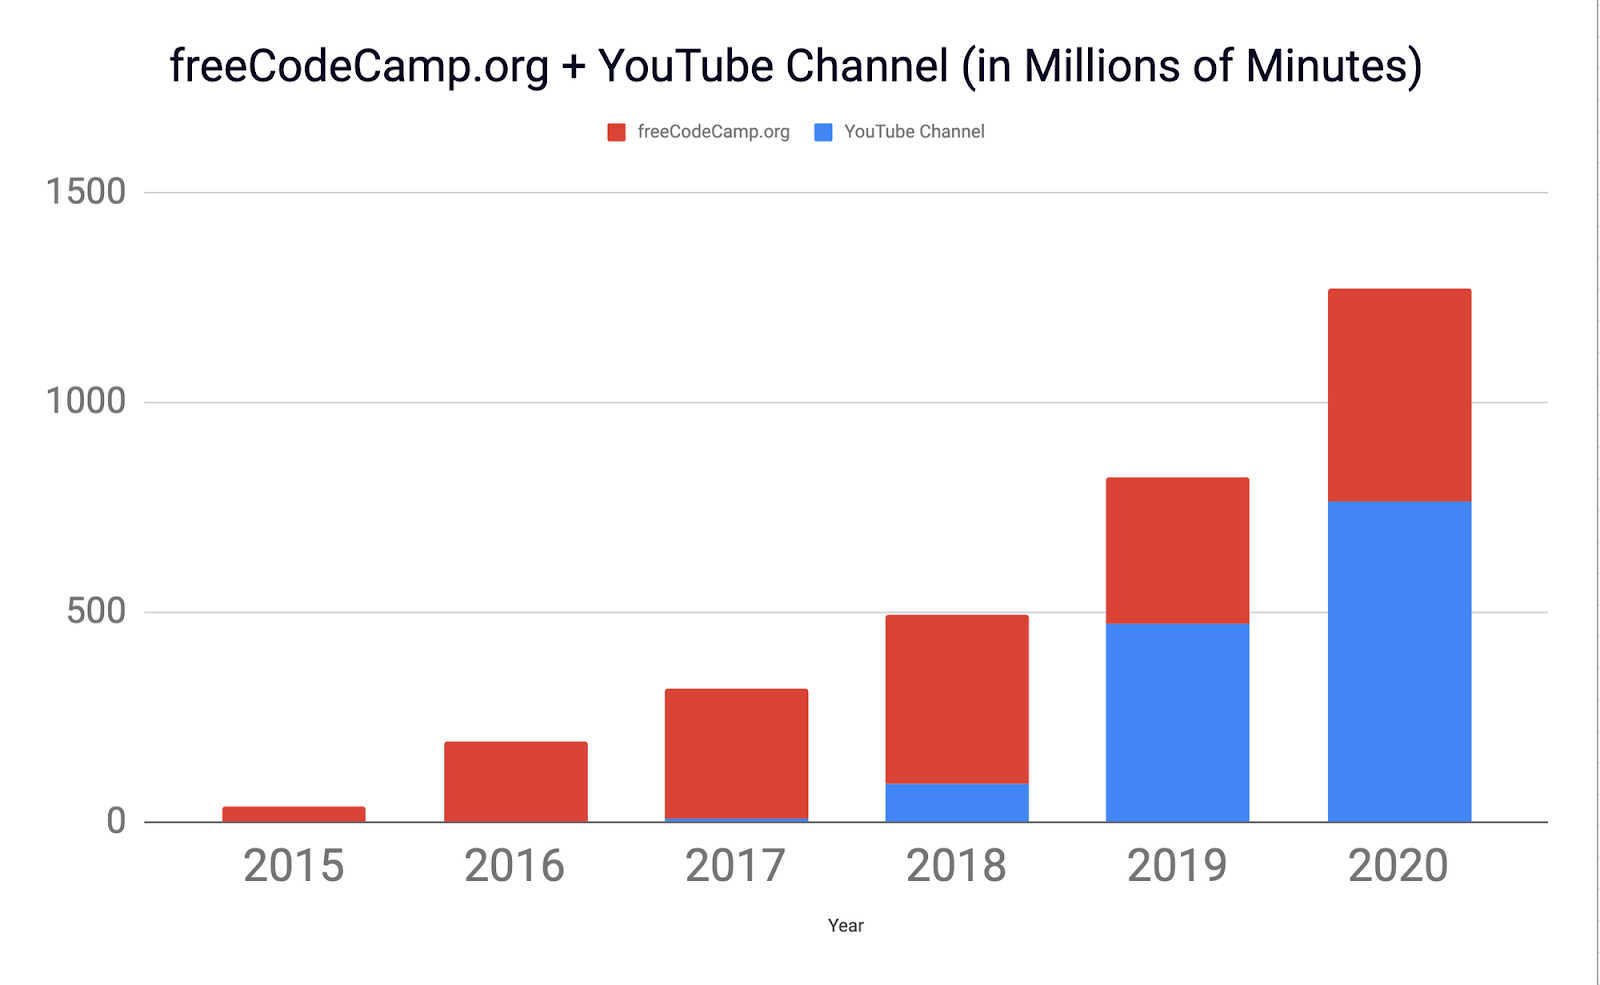 freeCodeCamp has 60% growth every year since 2015.